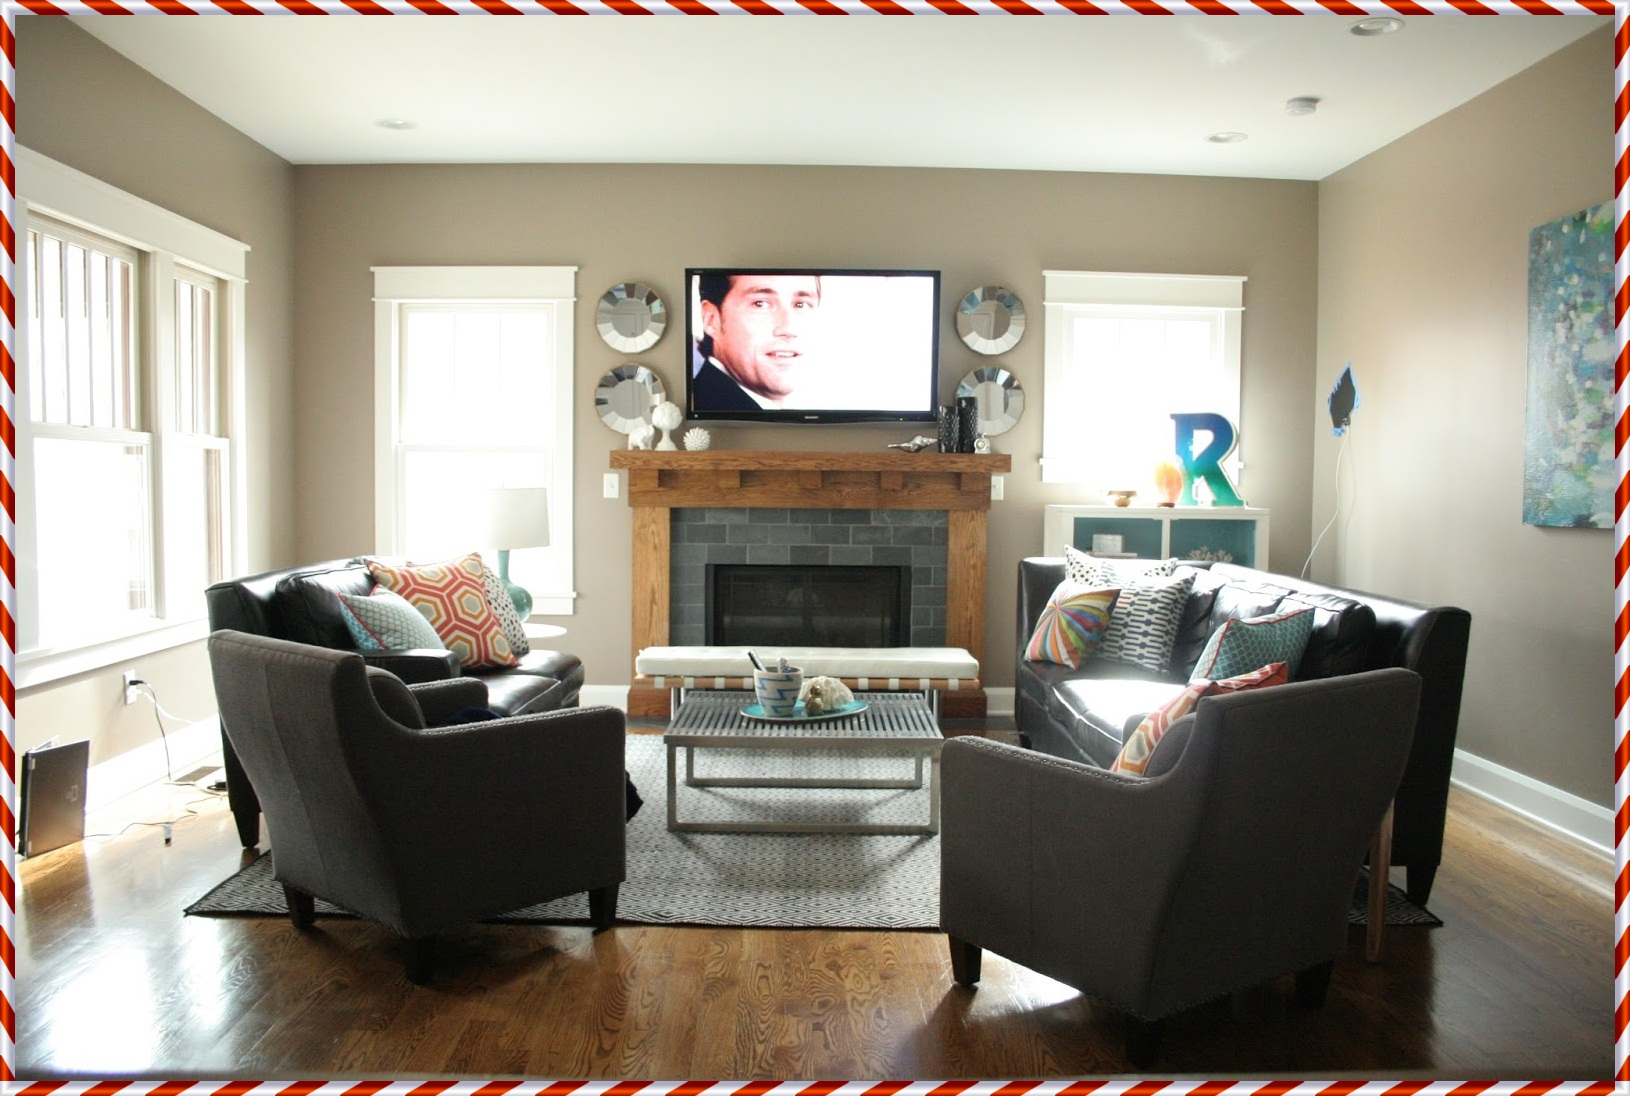 Likeable How To Arrange Living Room Furniture With ...